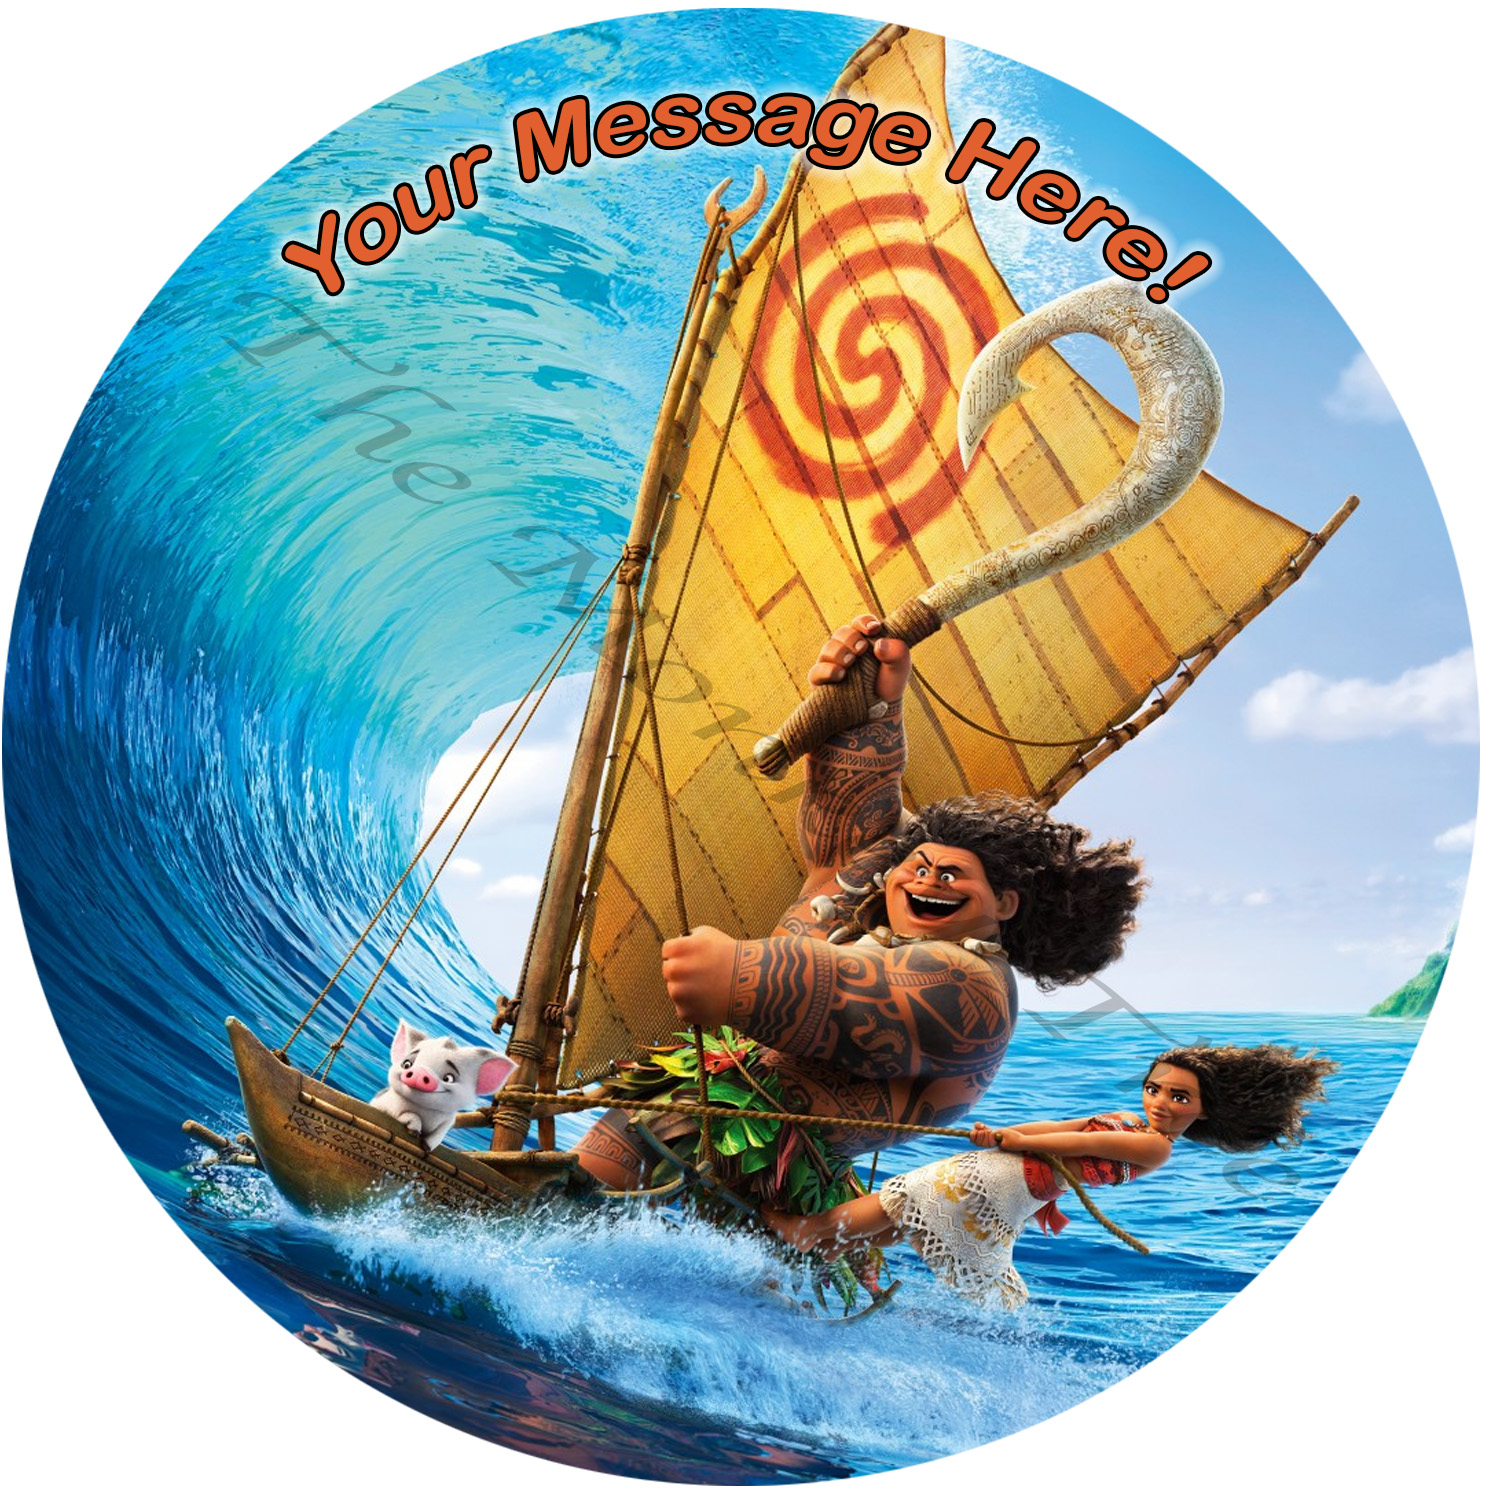 moana edible image cake birthday party topper